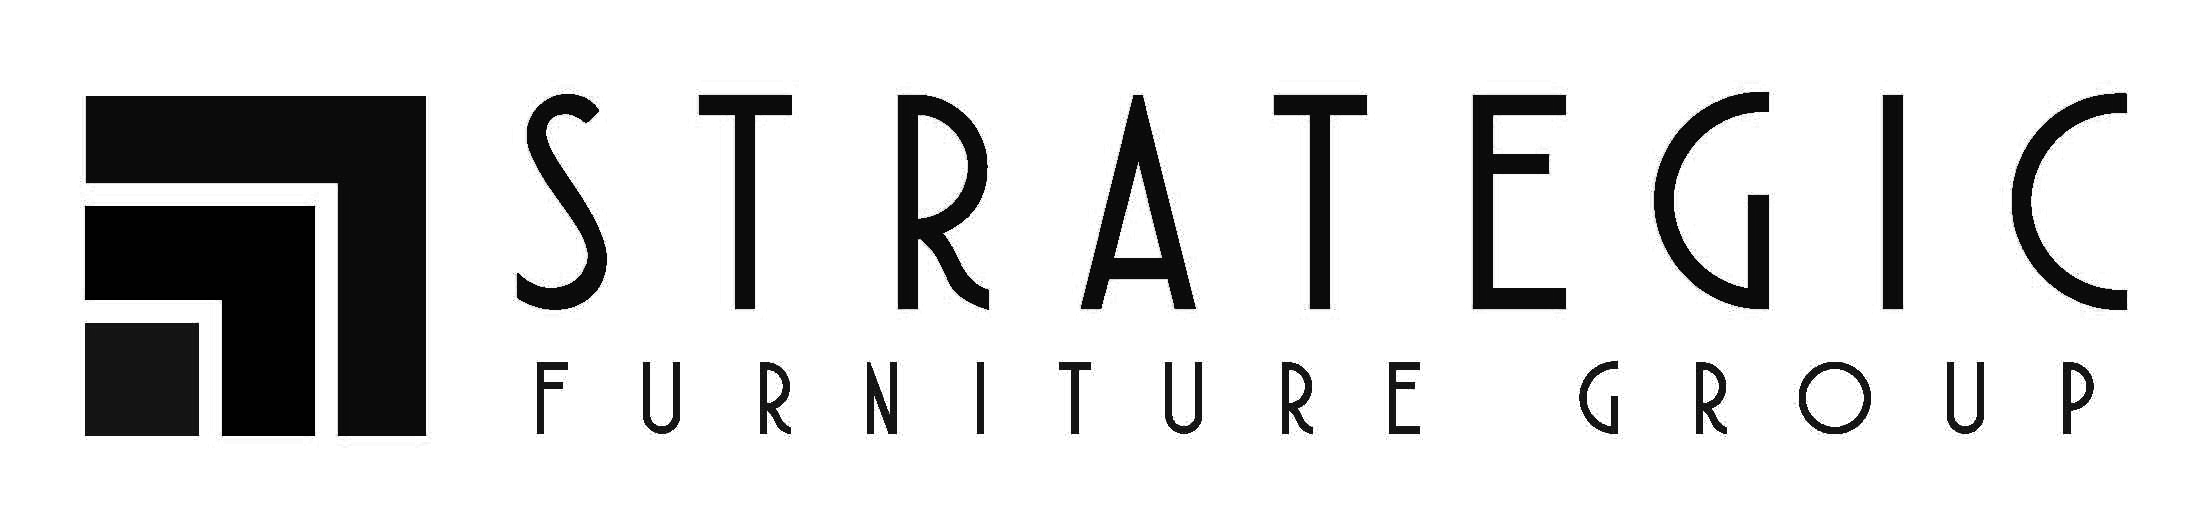 Strategic Furniture Group logo.jpg